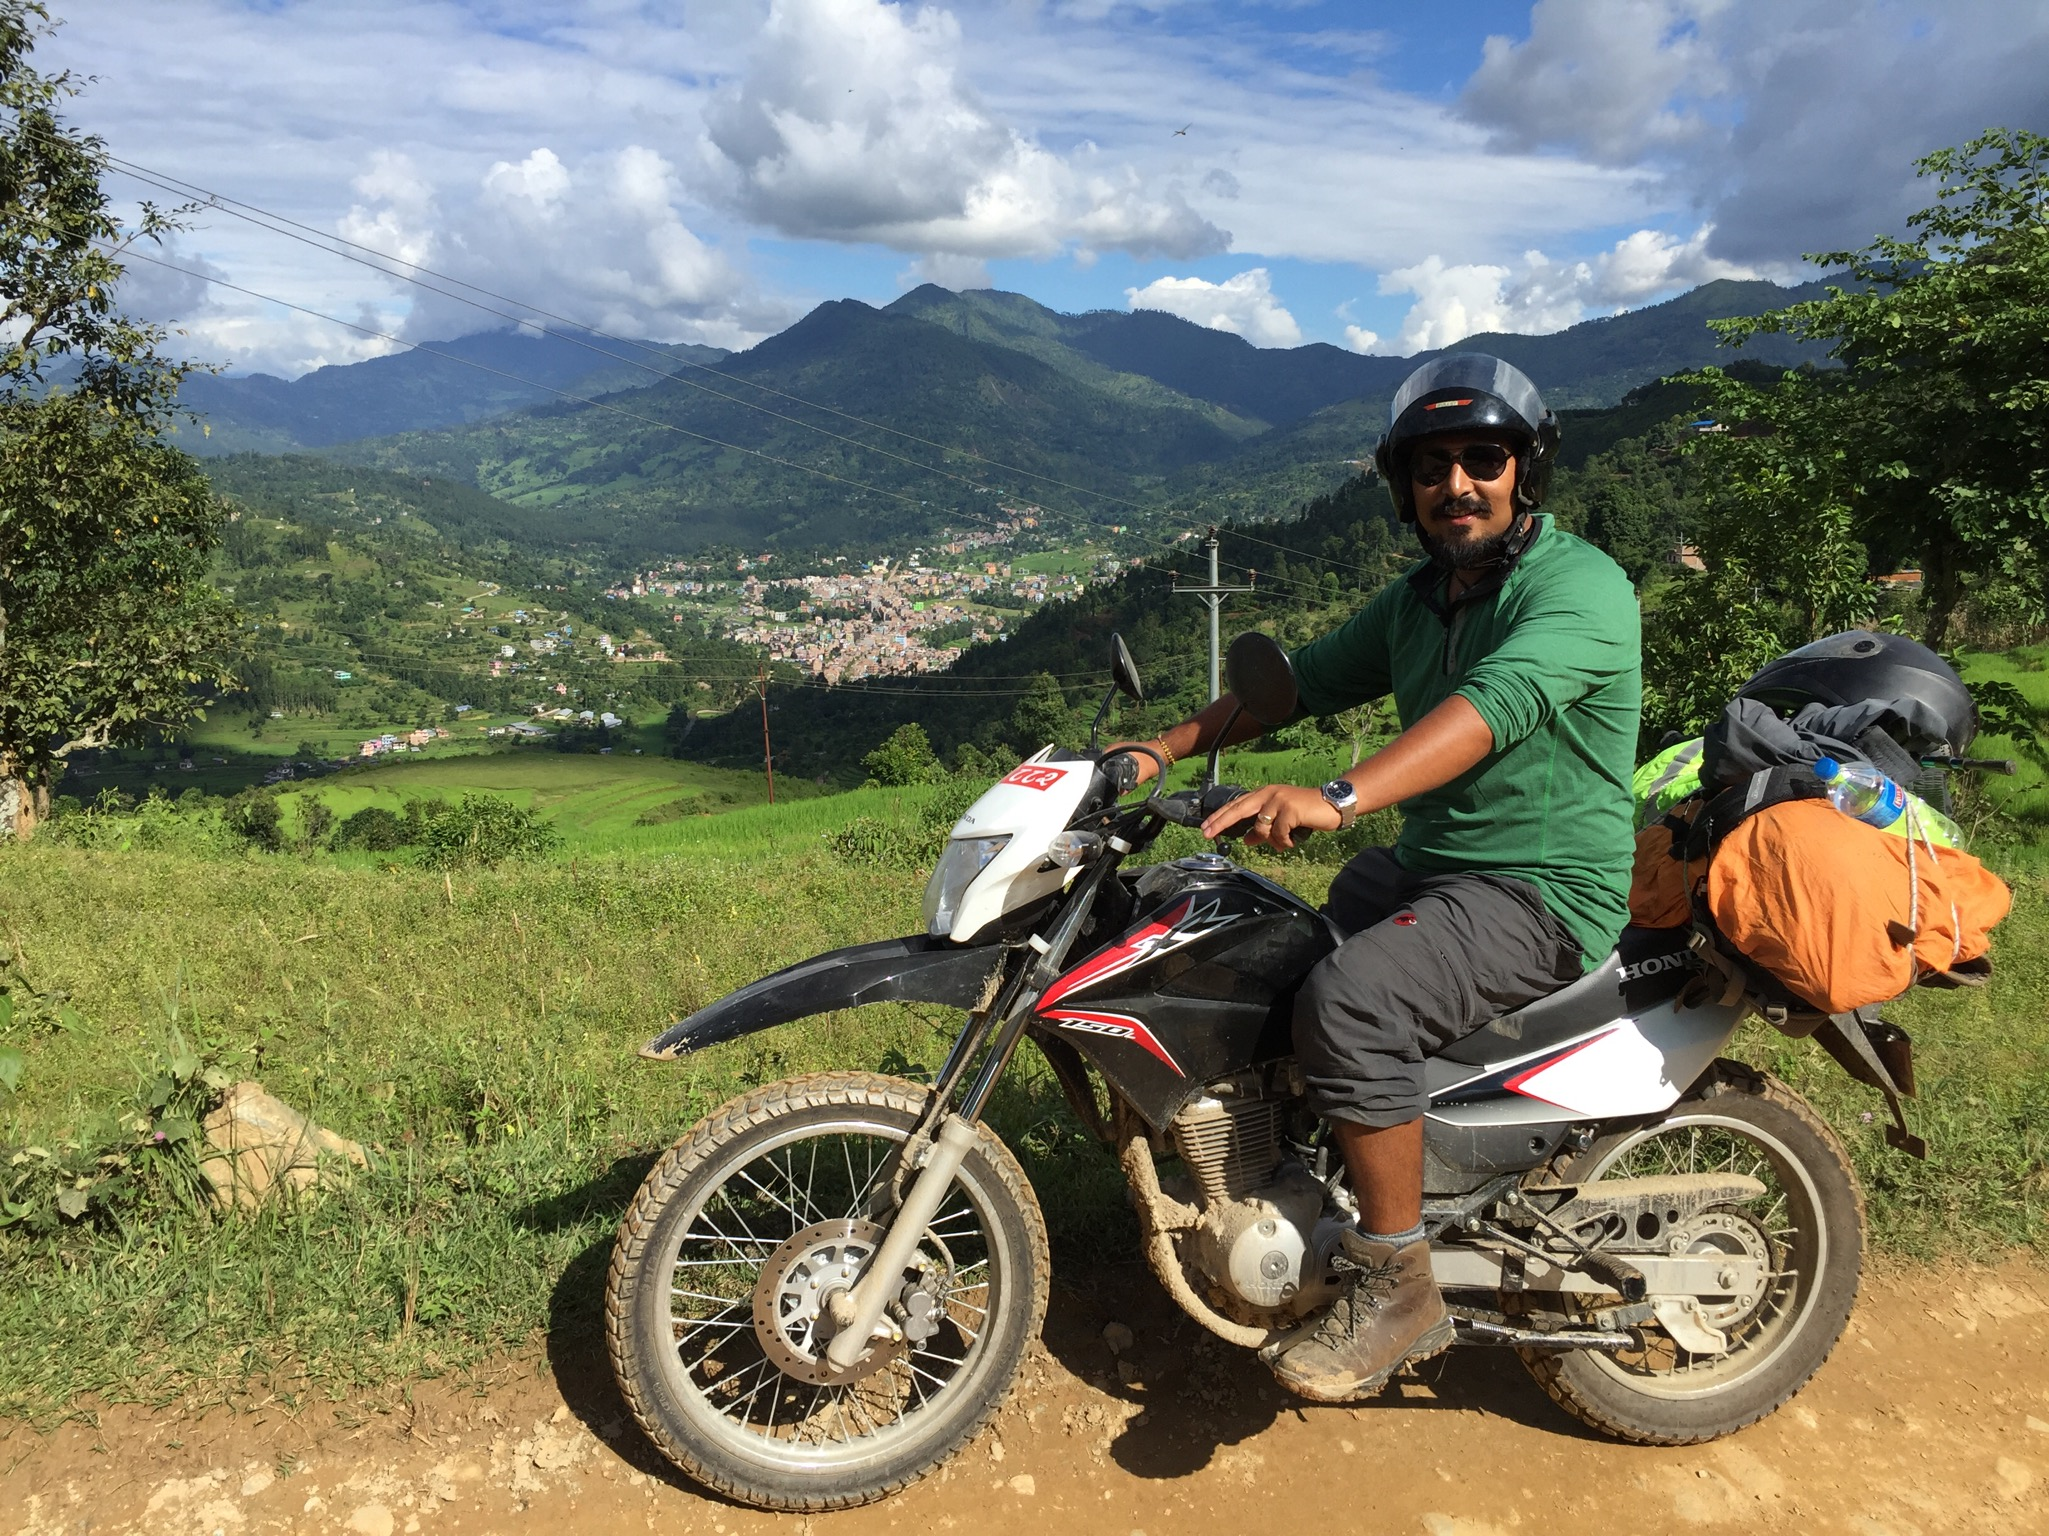 You can see Dhading village here in the distance.  The motorbike will travel through rivers and other terrain for up to 2 miles.